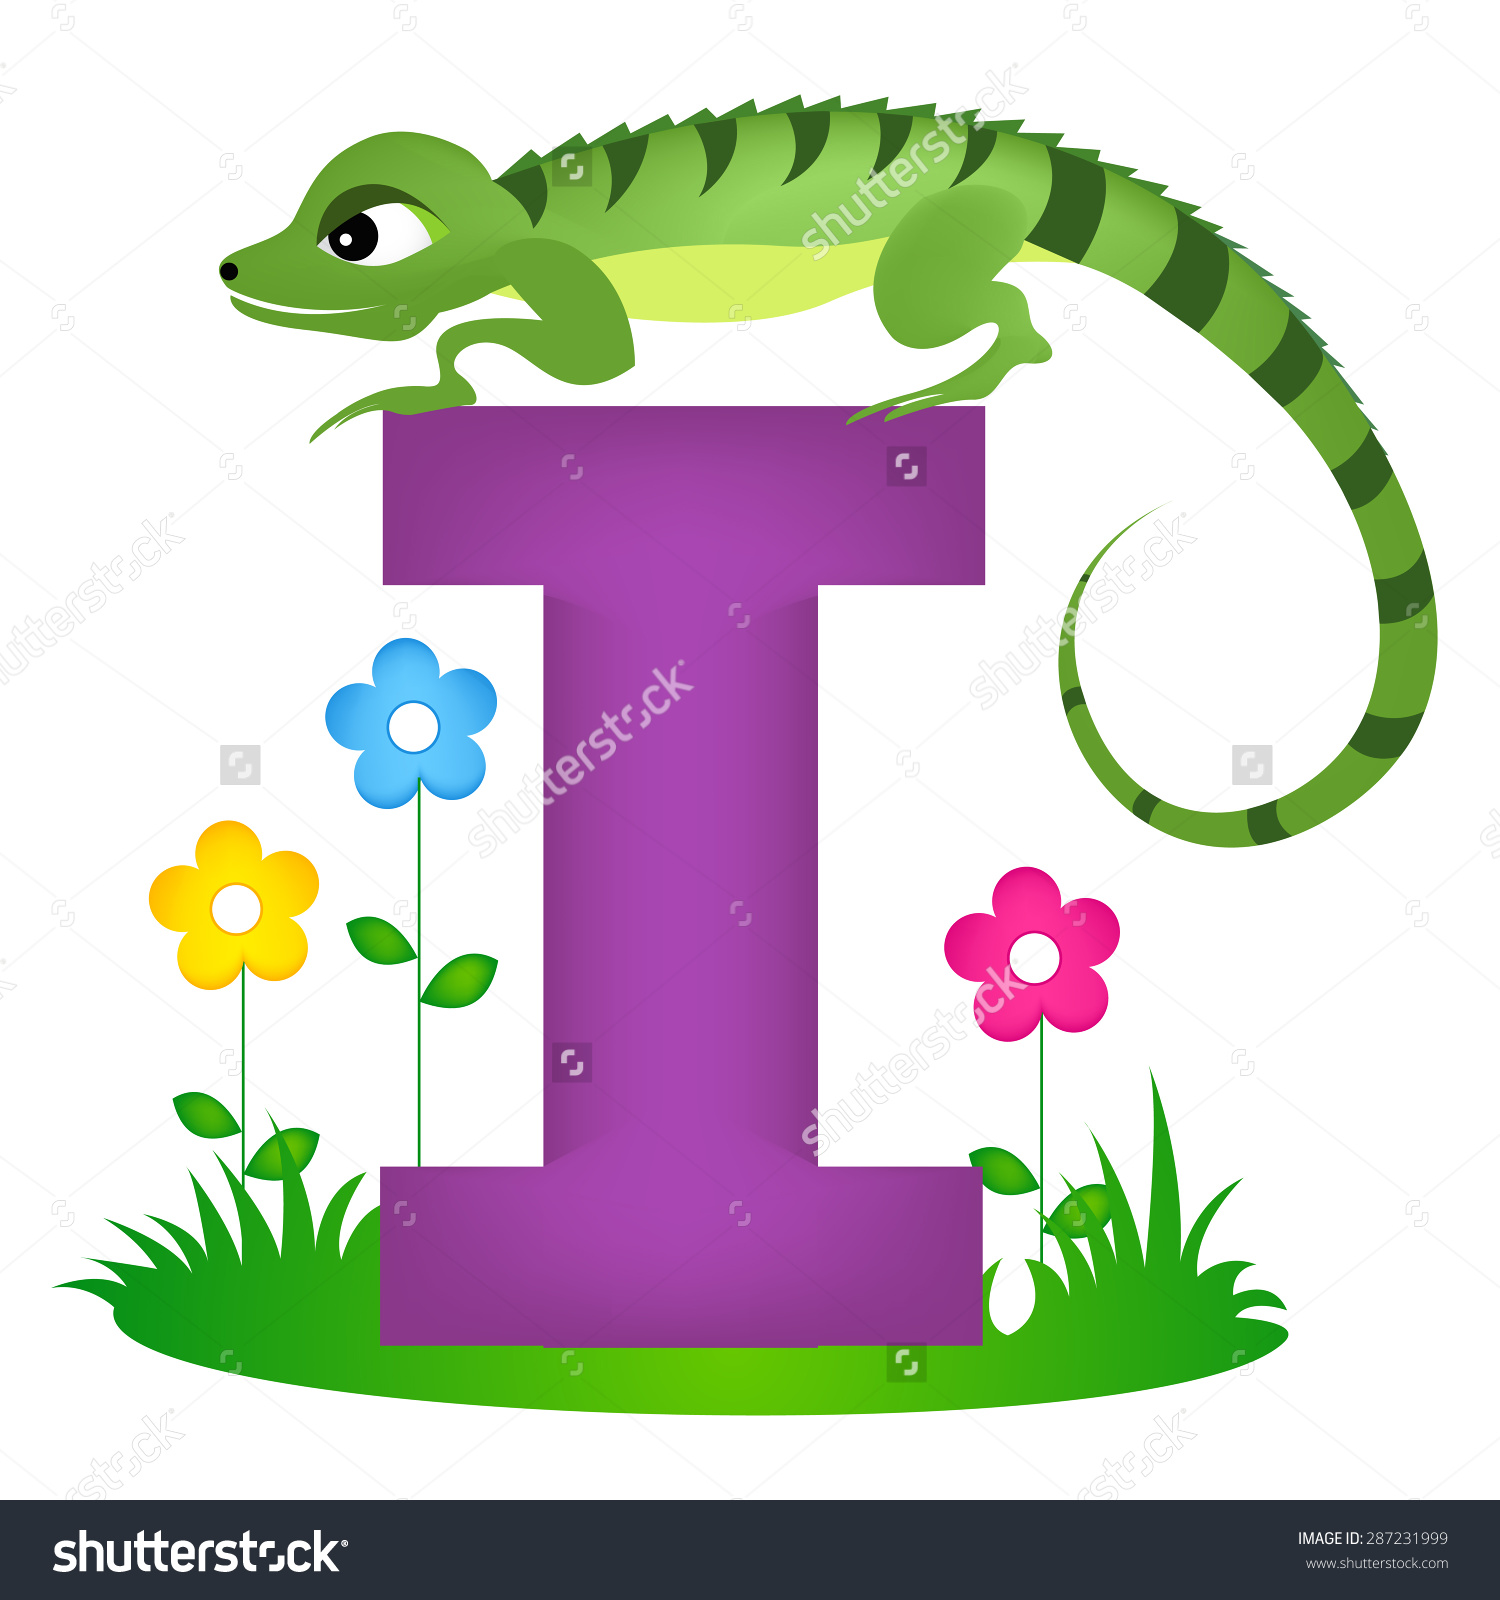 Animal clipart alphabet letters svg freeuse download Colorful Animal Alphabet Letter Cute Iguana Stock Vector 287231999 ... svg freeuse download